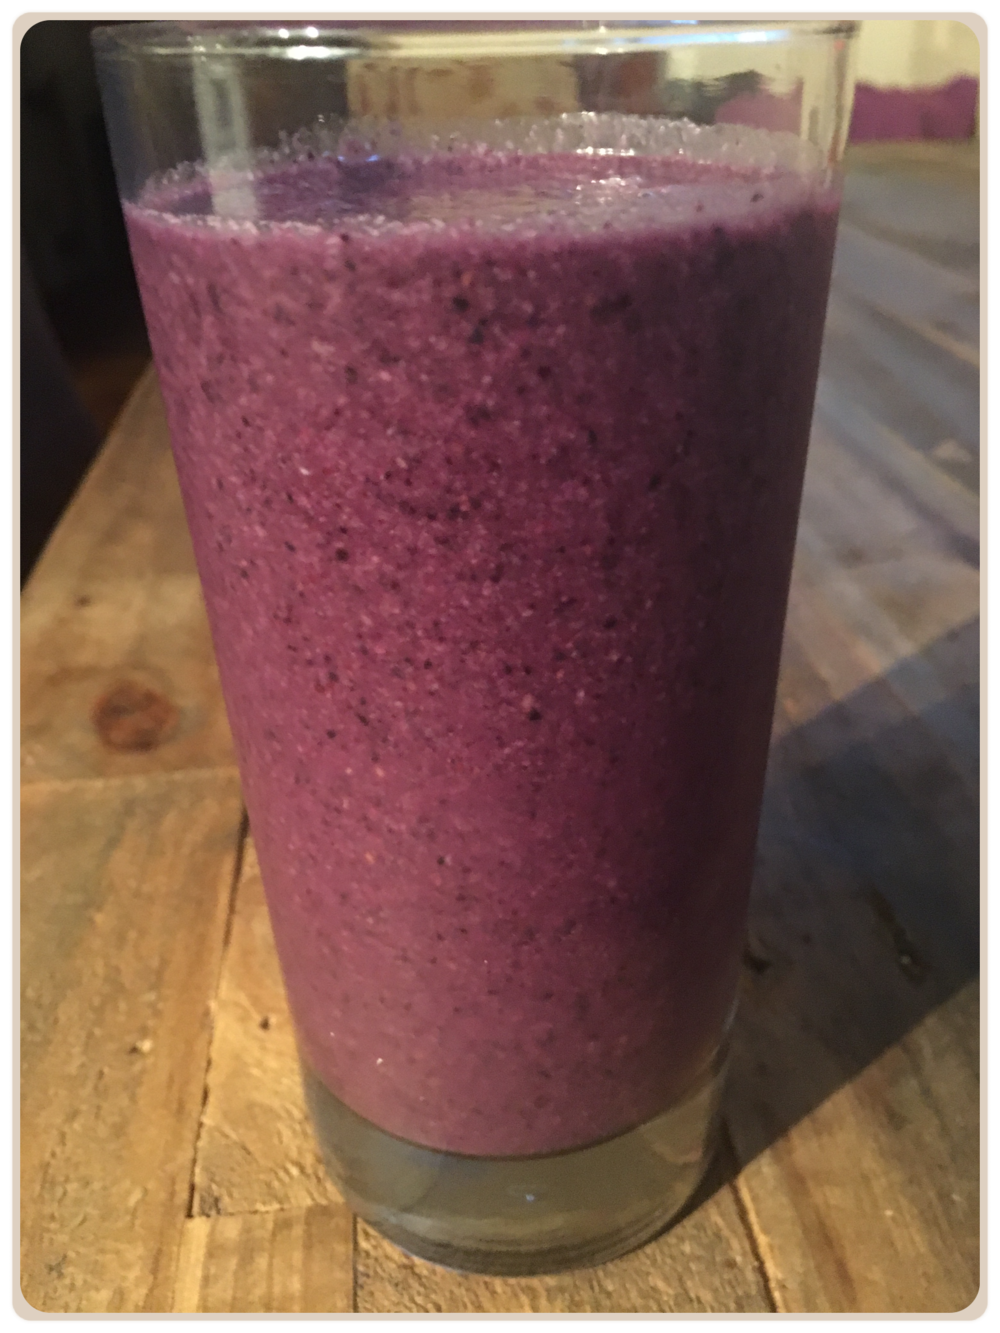 Blueberry Chia Smoothie   Ingredients:  1 cup Frozen Blueberries 1 1/2 cups Almond Milk (sweetened) 2 tbsp Chia Seeds 1 tbsp Coconut Oil 1 tsp Vanilla Extract 1/4 tsp Cinnamon Raw Honey to taste  Directions:  Combine all ingredients together in a blender and blend on high until smooth.